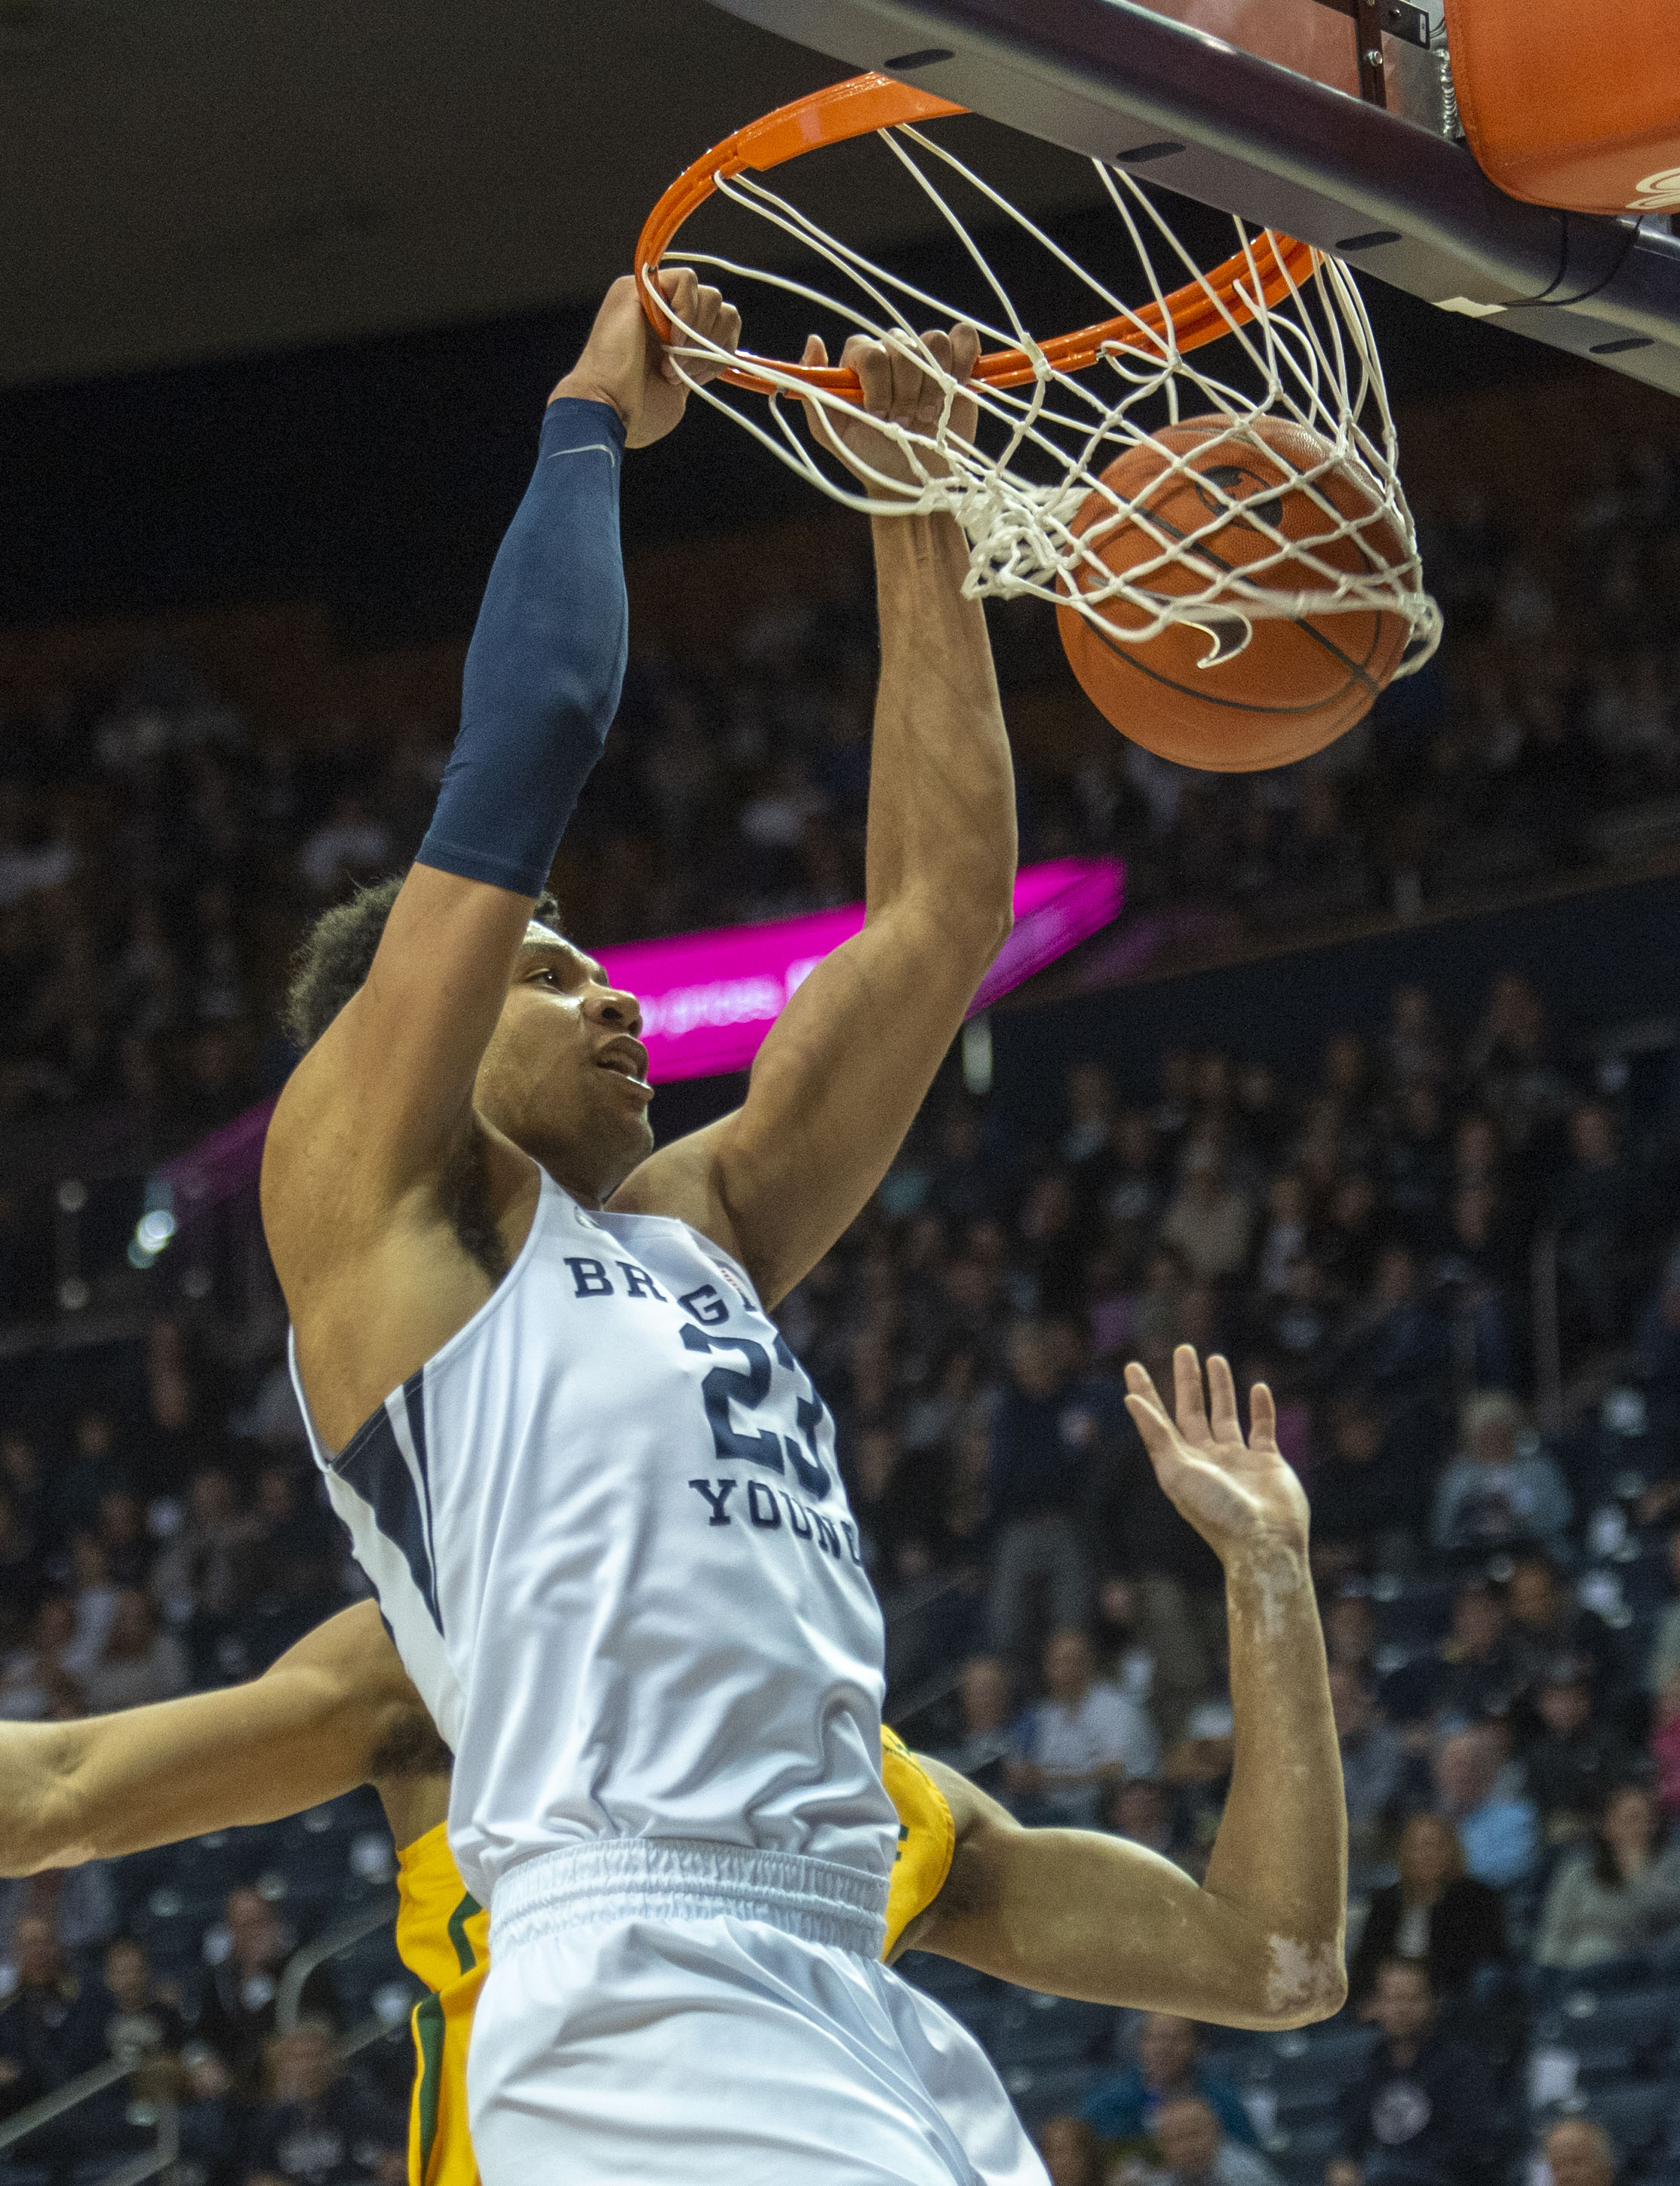 (Rick Egan  |  The Salt Lake Tribune)  Brigham Young forward Yoeli Childs (23) dunks for the Cougars, in WCC basketball action at the Marriott Center, Thursday, February 21, 2018.